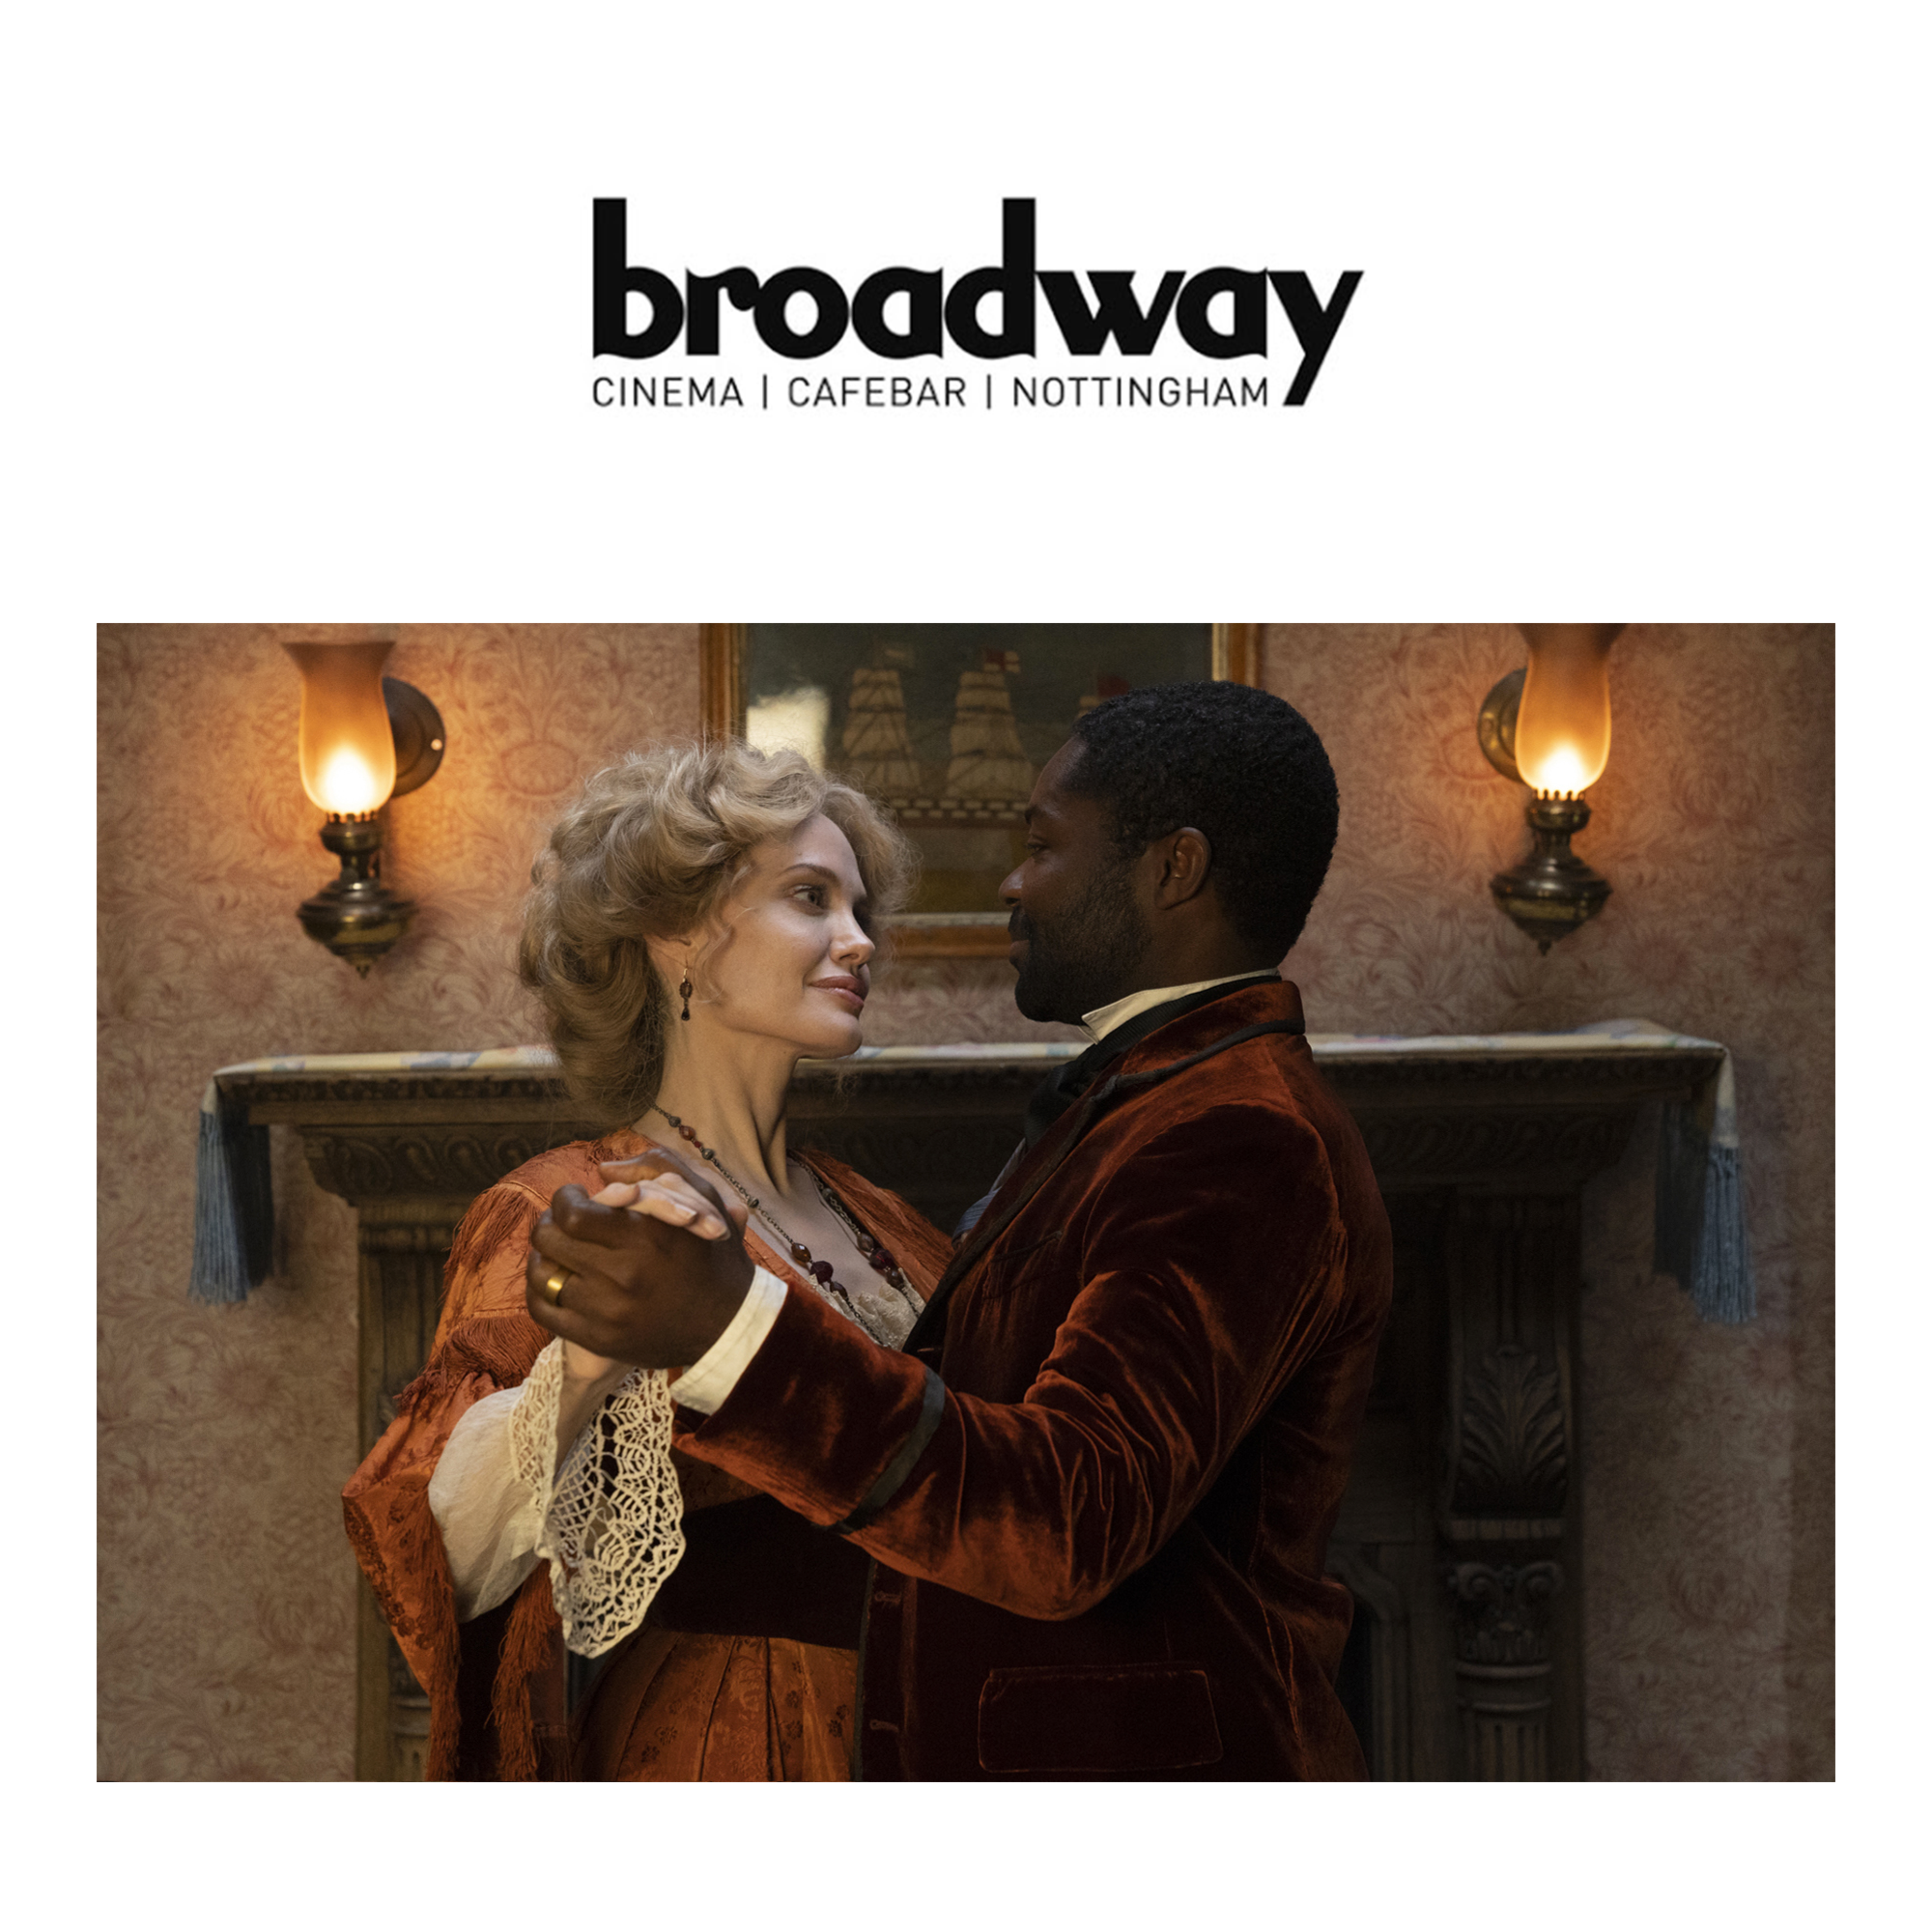 Come Away at Broadway